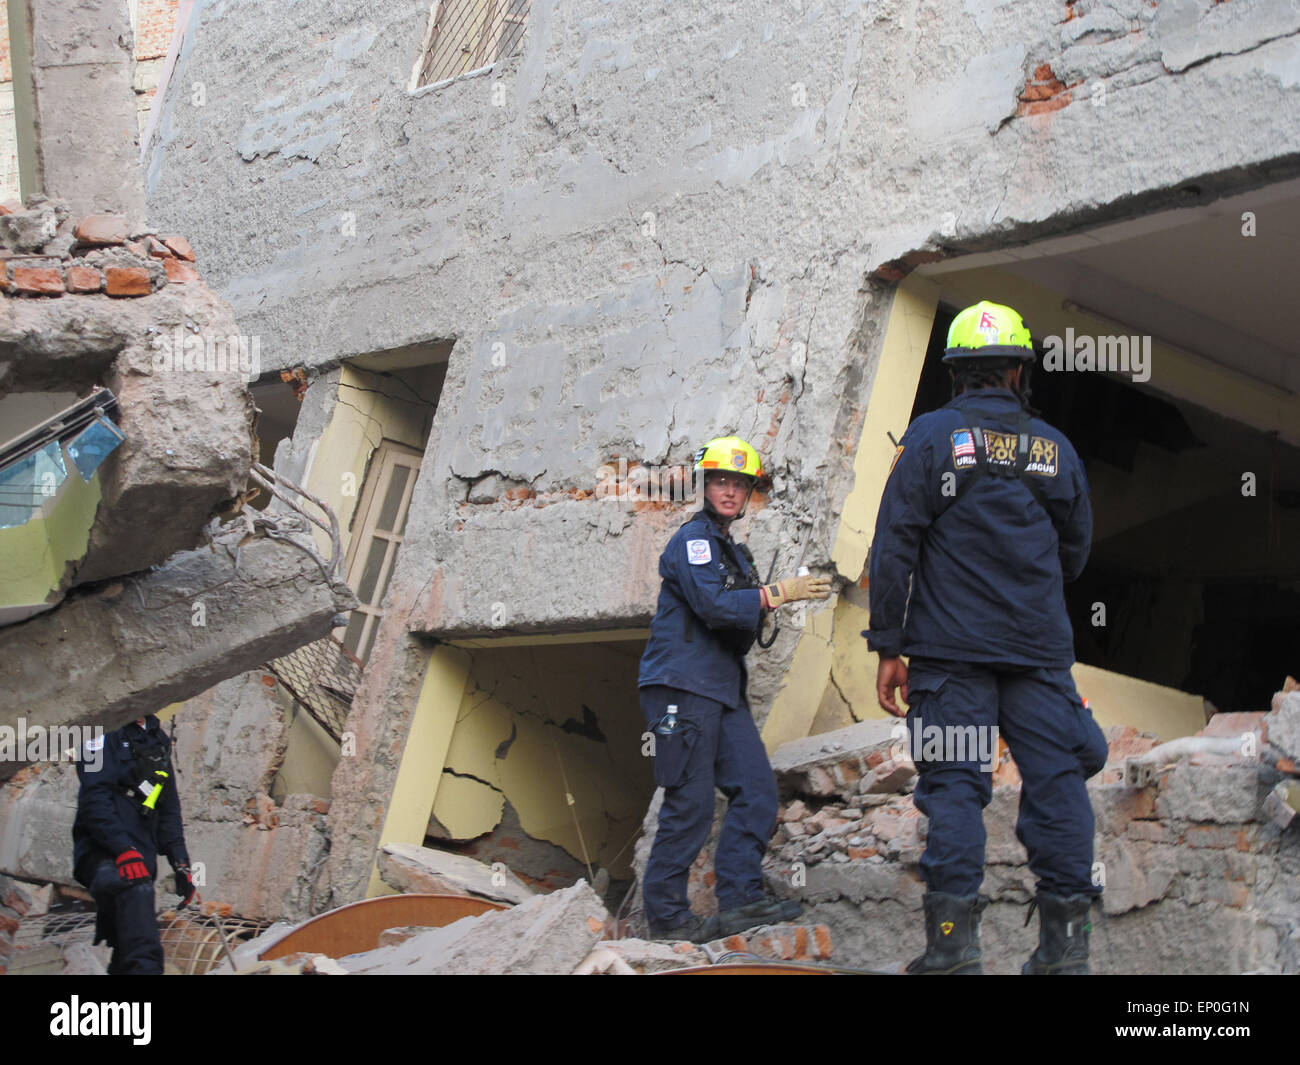 Kathmandu, Nepal. 12th May 2015. A fresh earthquake has occurred in Nepal. Photo shows American Rescuers today in - Stock Image